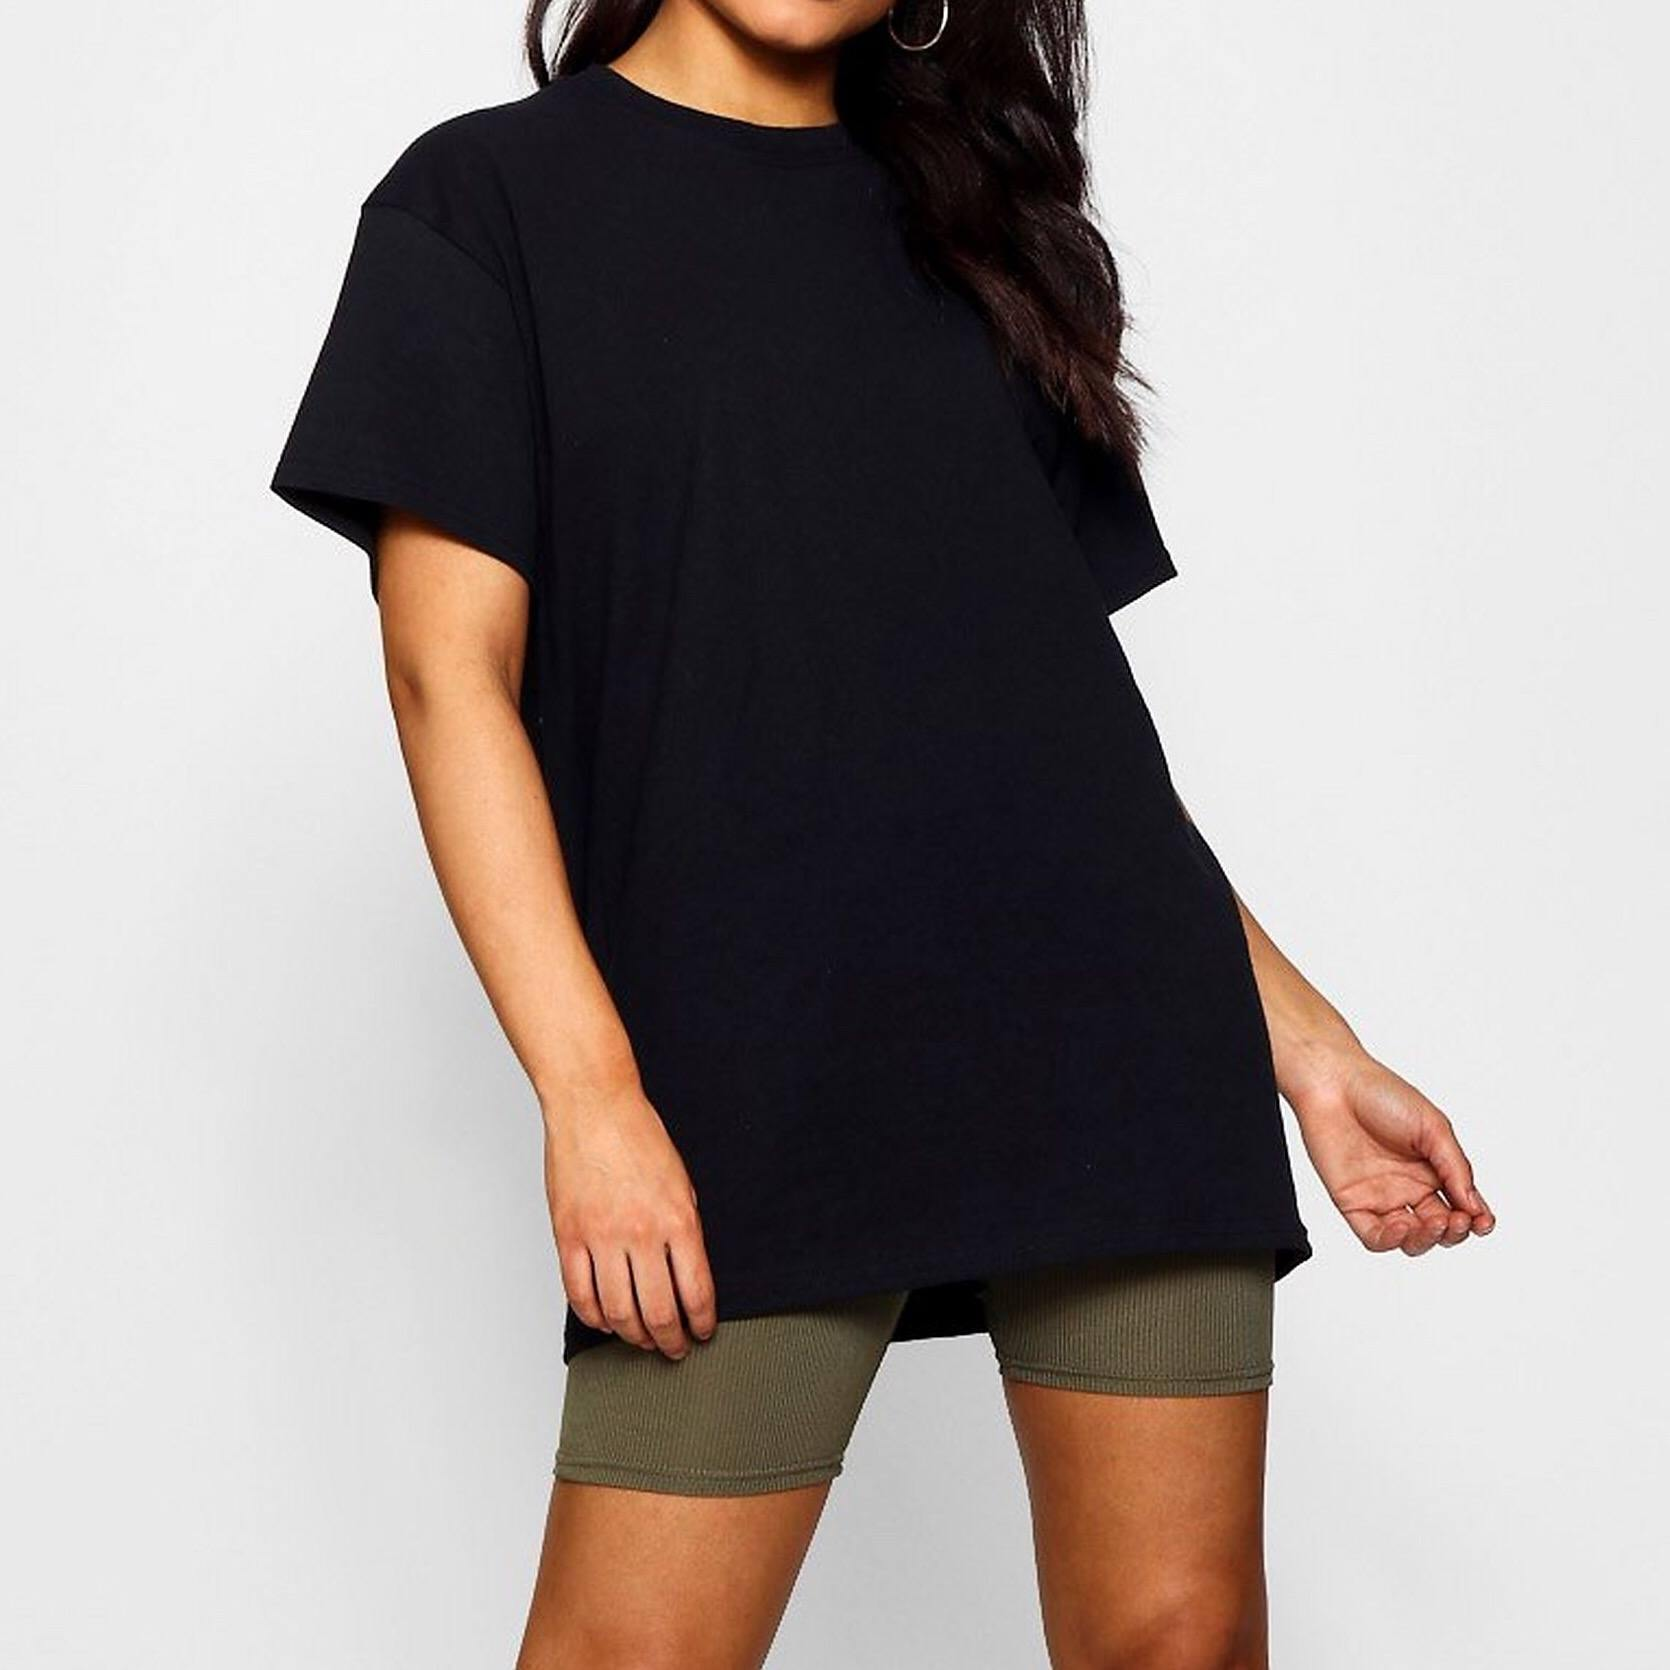 Black Oversized T-Shirt - Flamour.ro